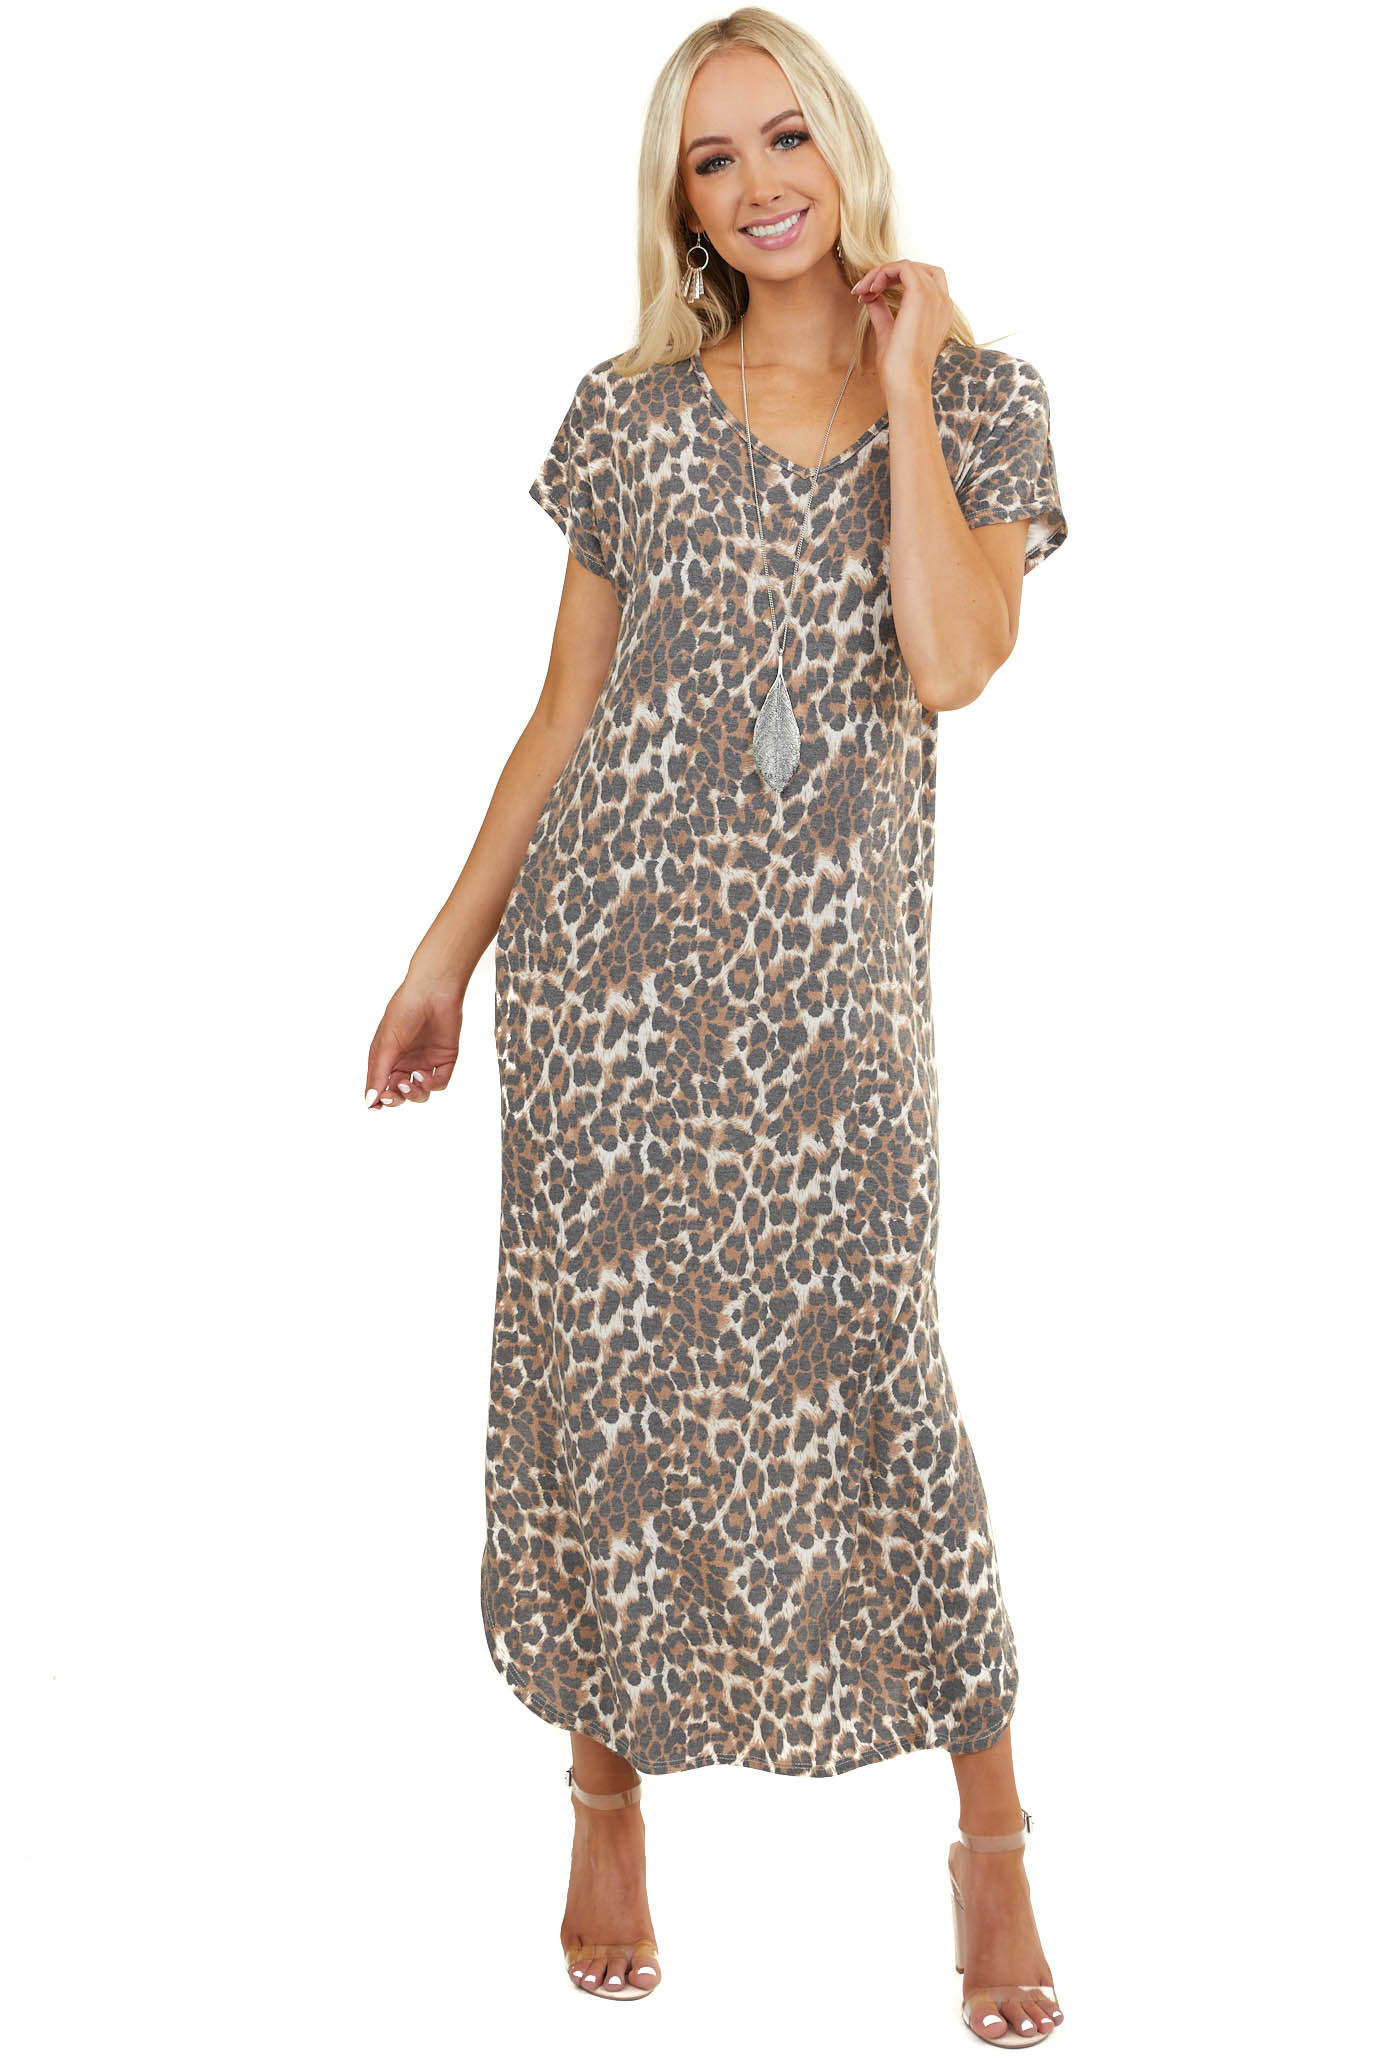 Cognac Leopard Print Short Sleeve Maxi Dress with Side Slits